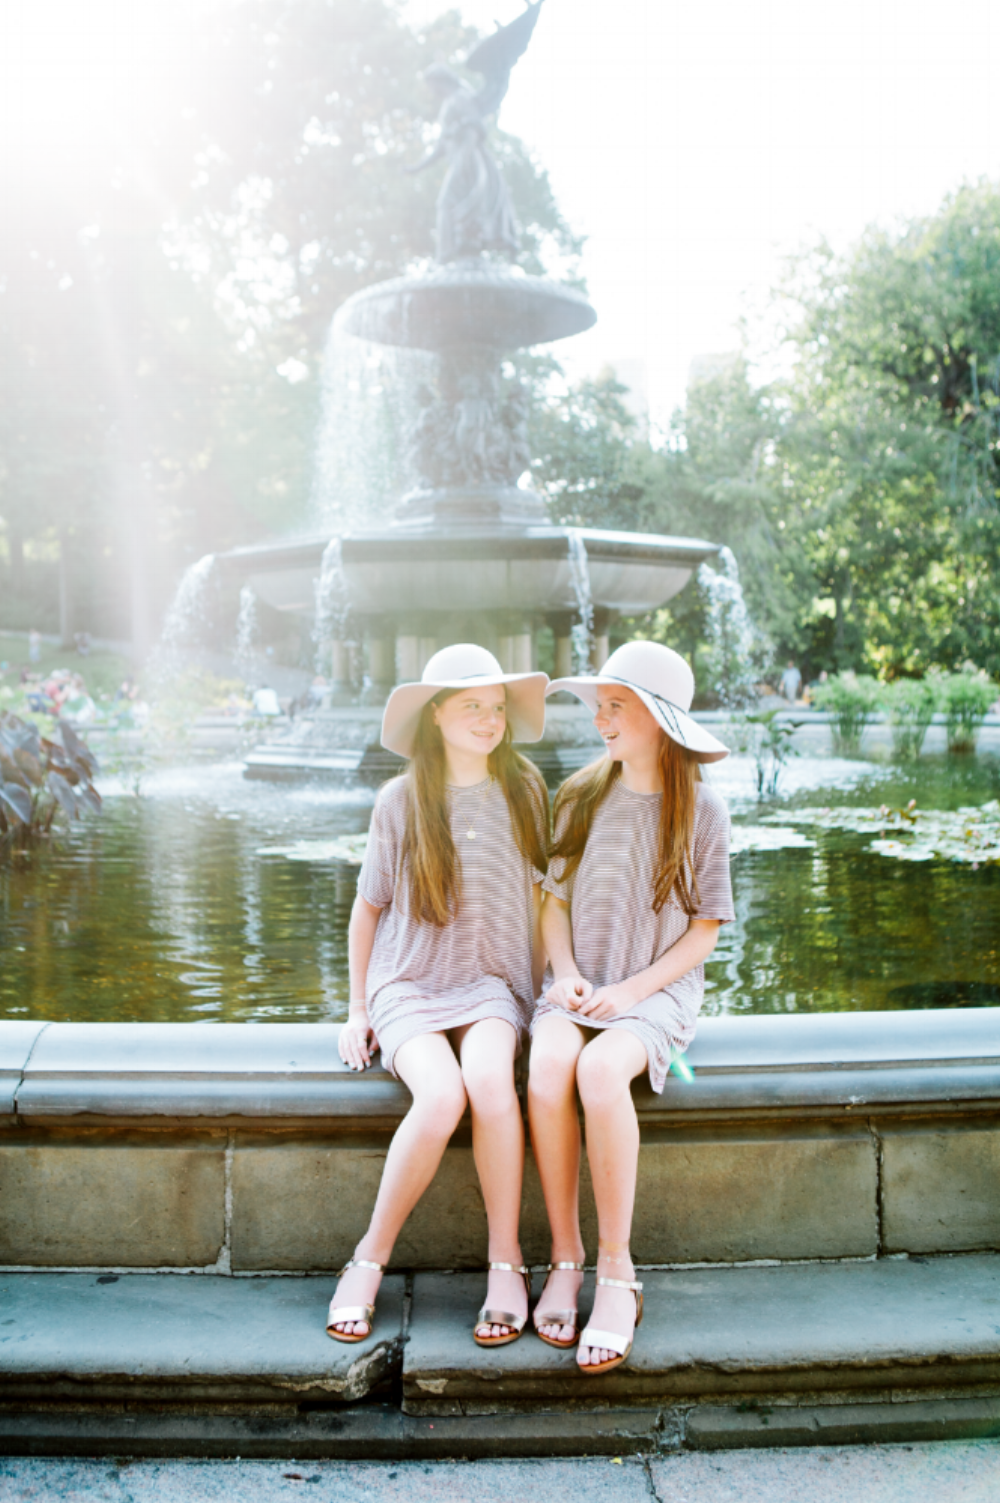 Twin sisters smiling at each other while sitting on the edge of Bethesda fountain in Central Park, New York City USA